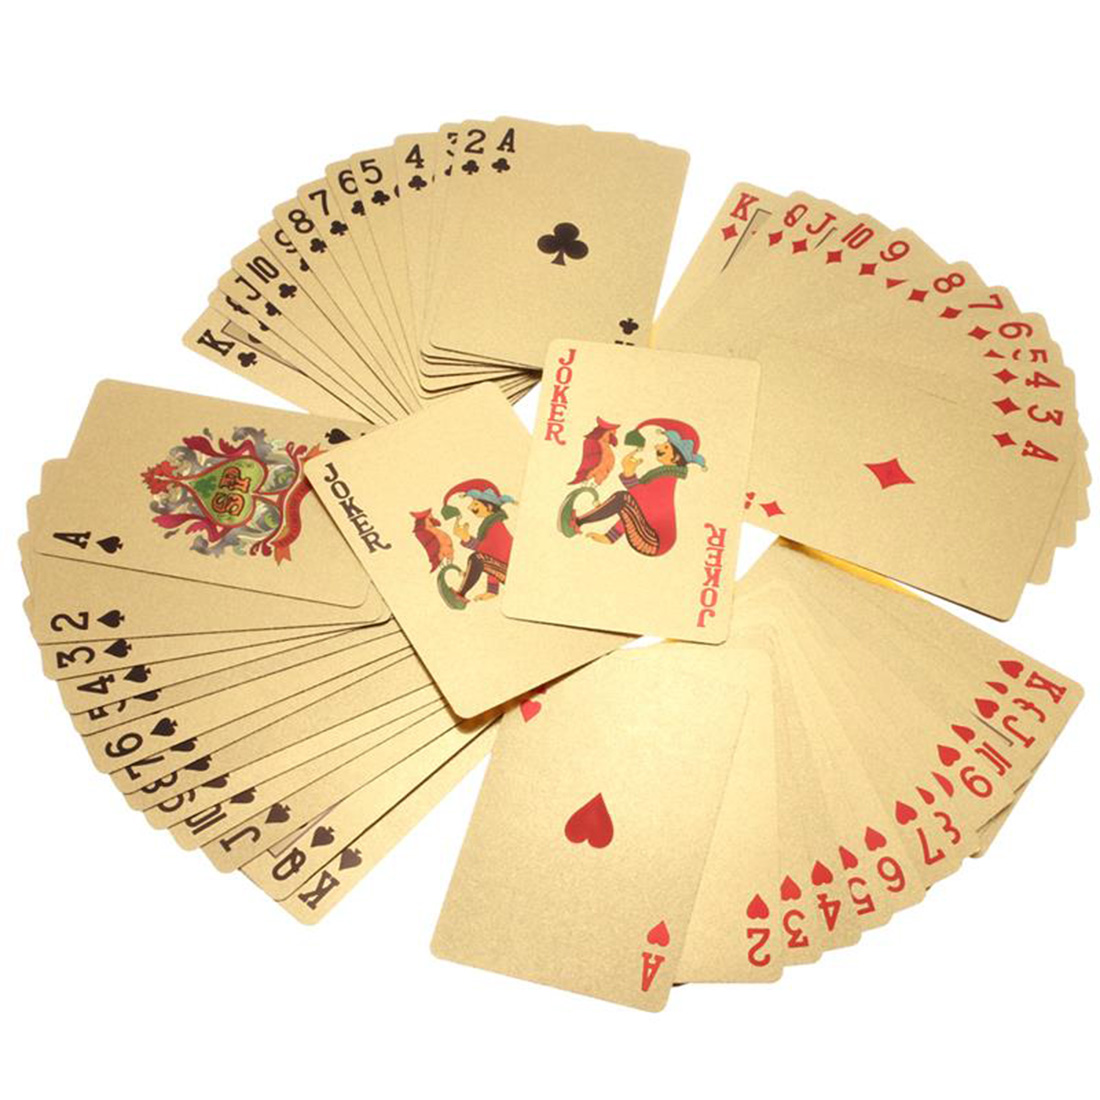 Hot Sell New High Grade 24K Gold Foil Poker Lattice Grid Pattern Playing Cards